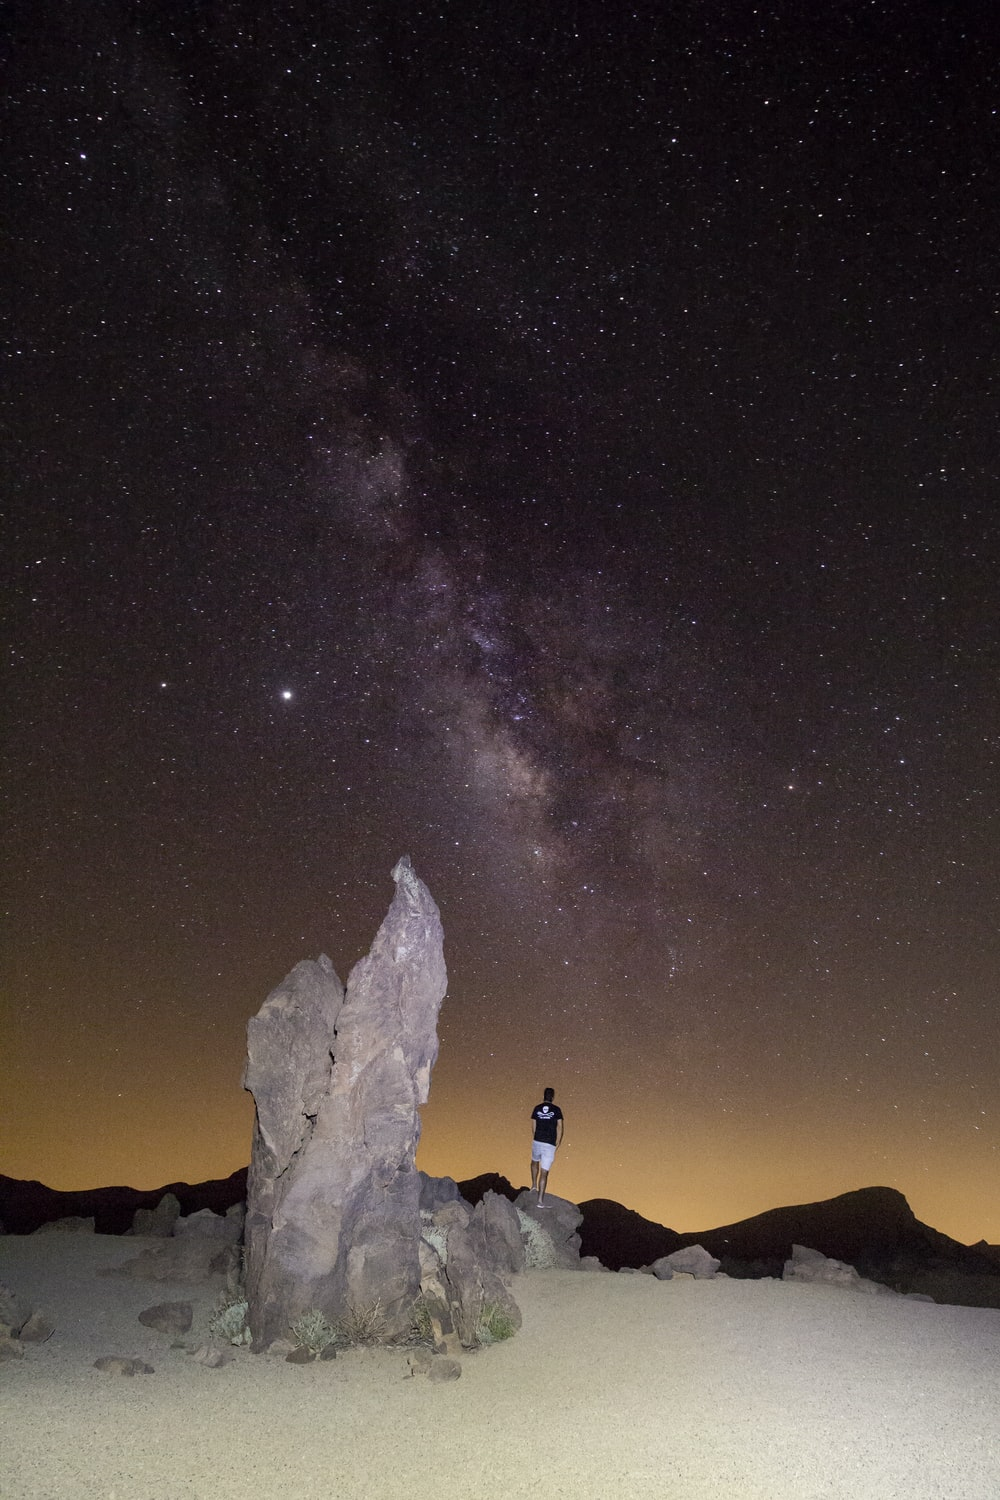 silhouette of people standing on mountain under starry night